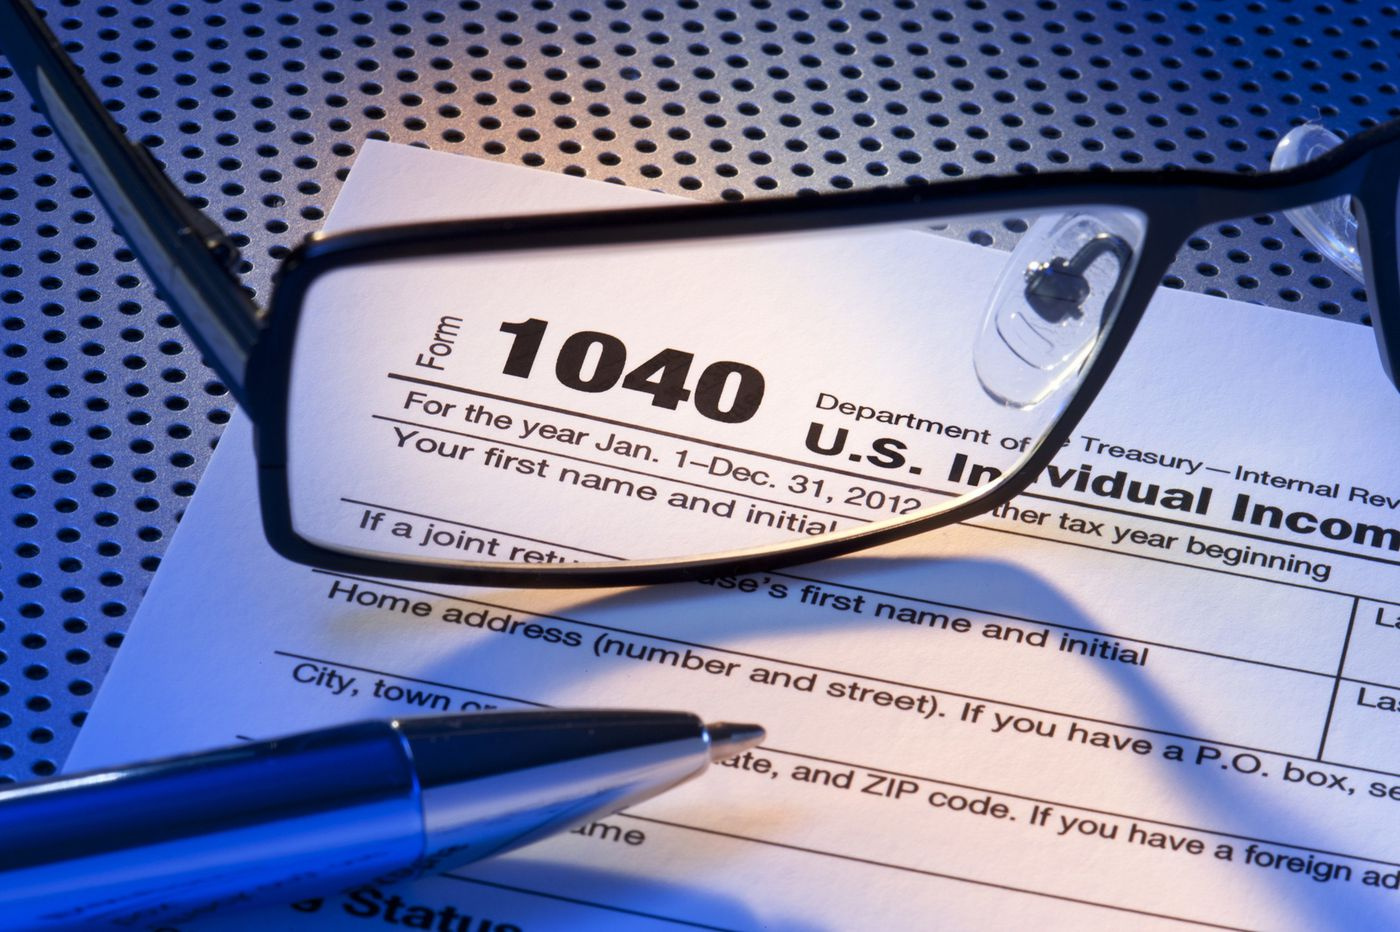 A few last-minute tips to save on your 2019 tax bill